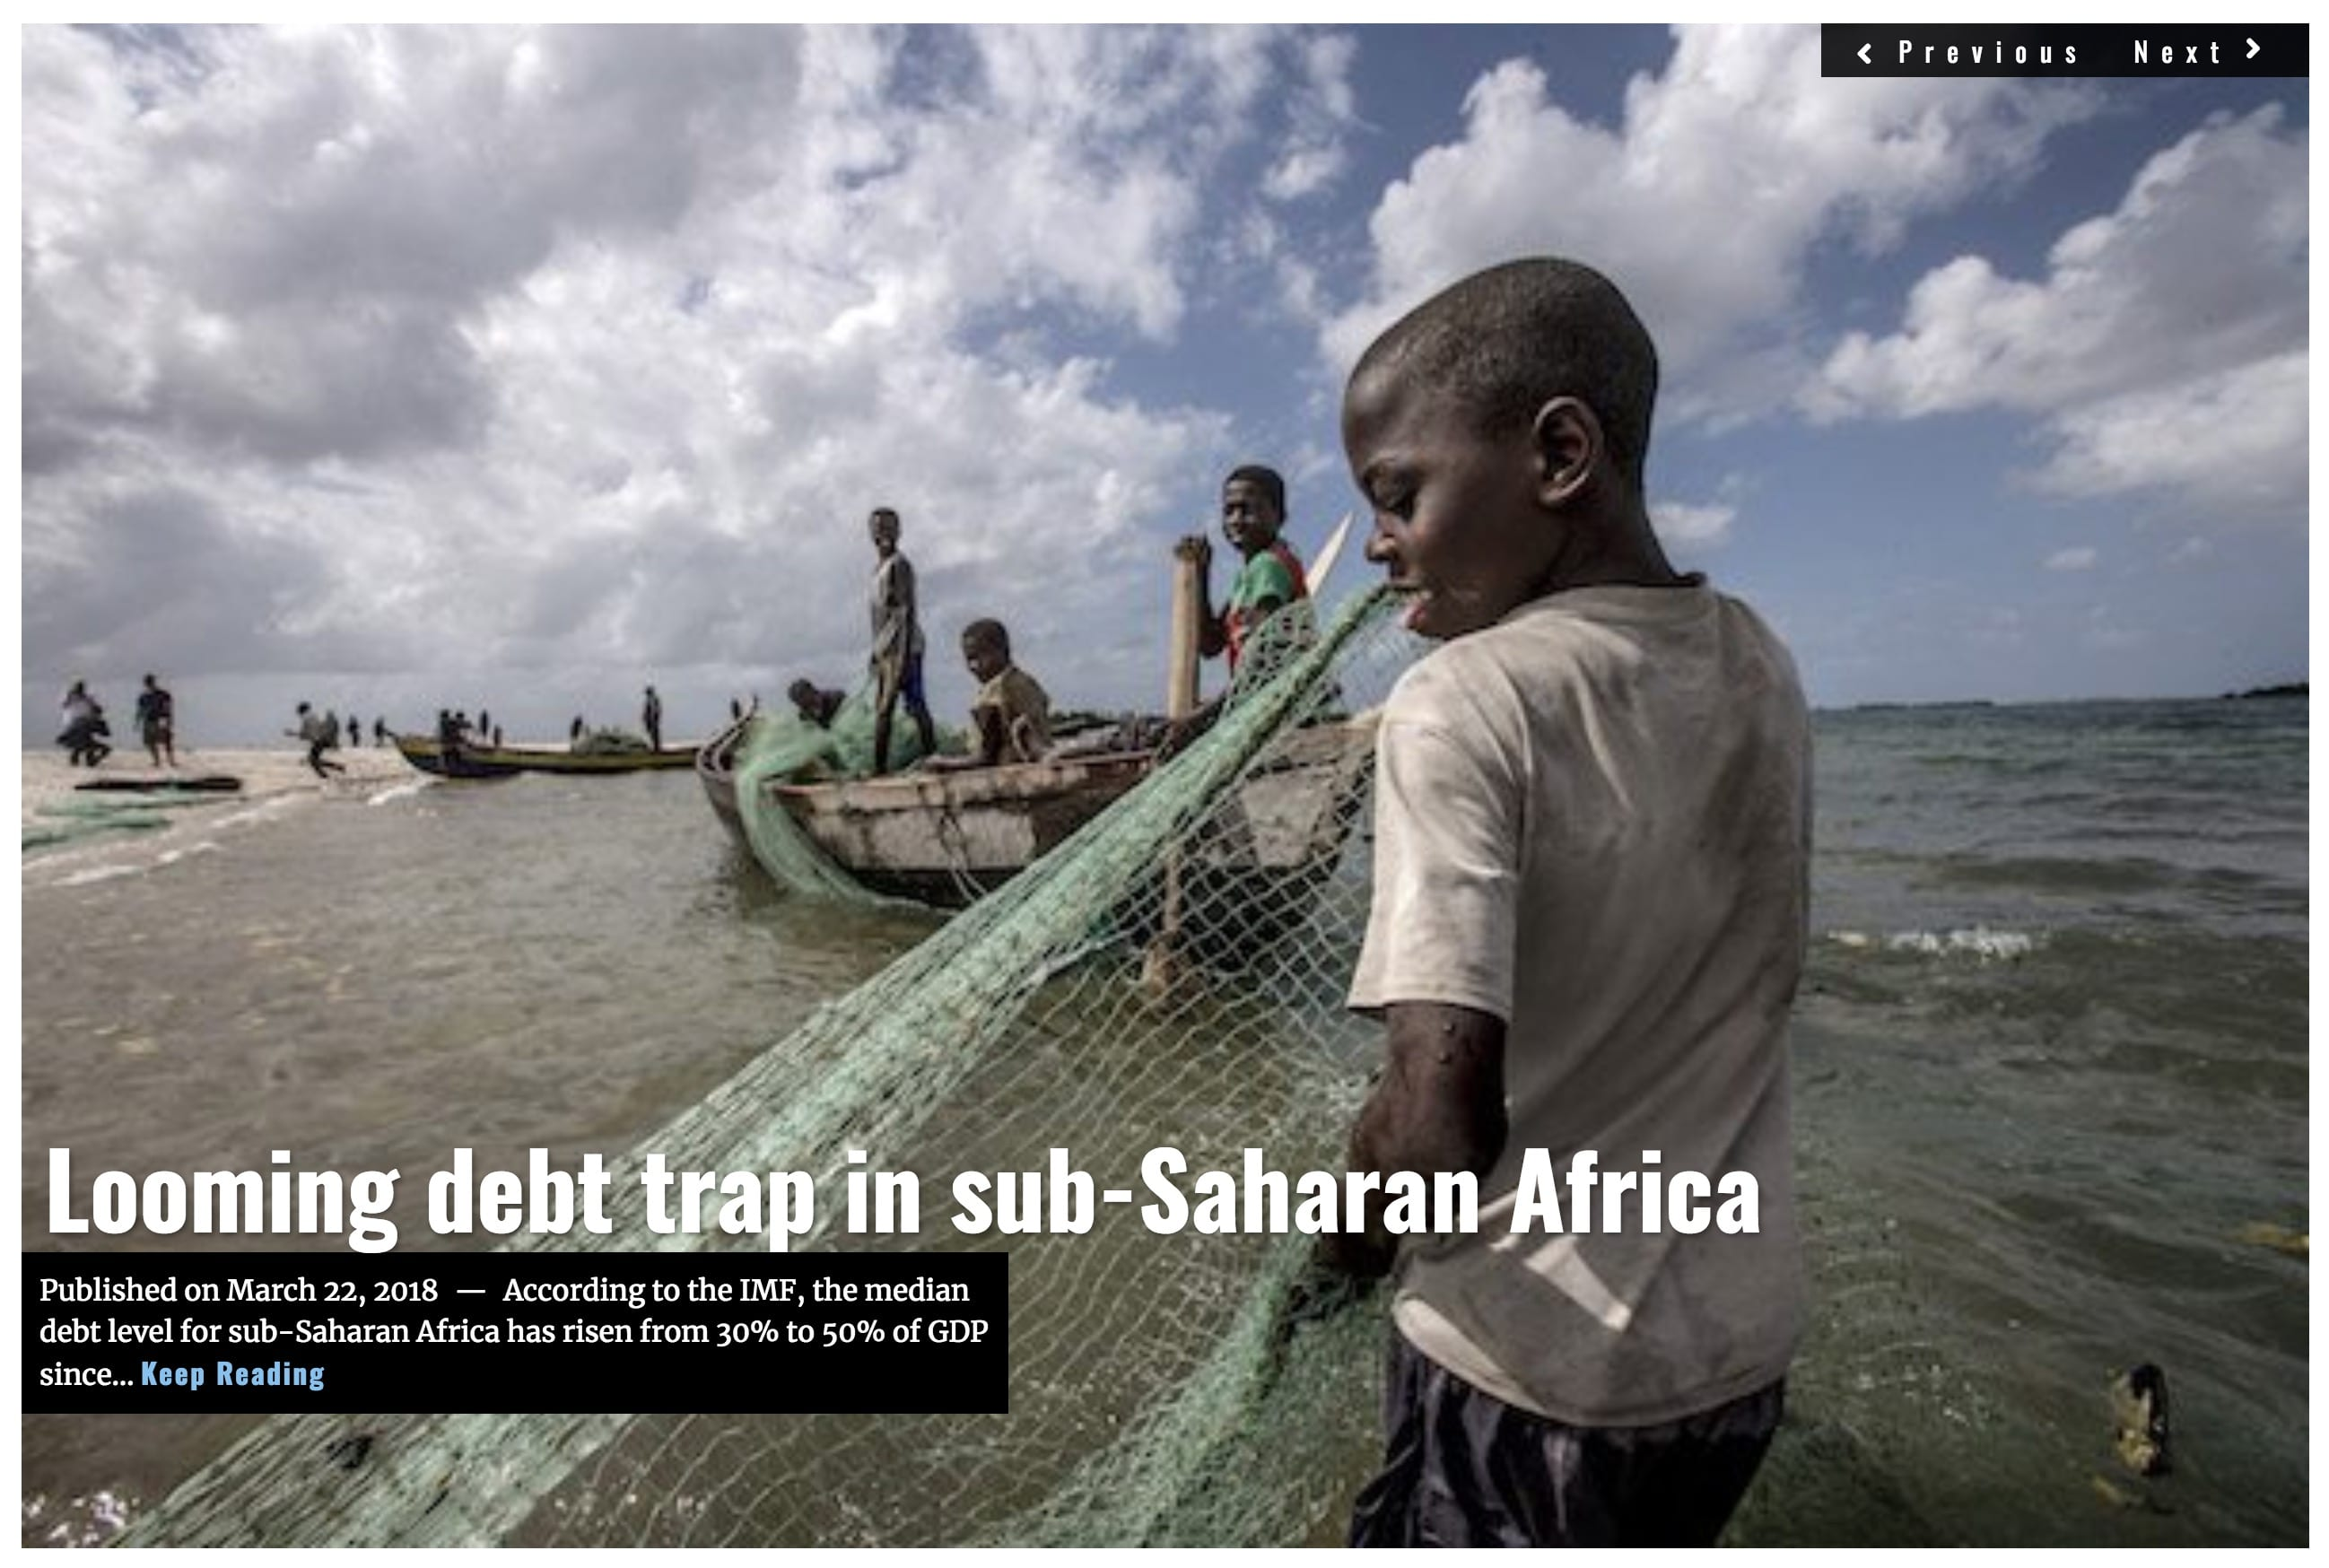 Image Lima Charlie News Headline Africa Debt MAR 22 2-10